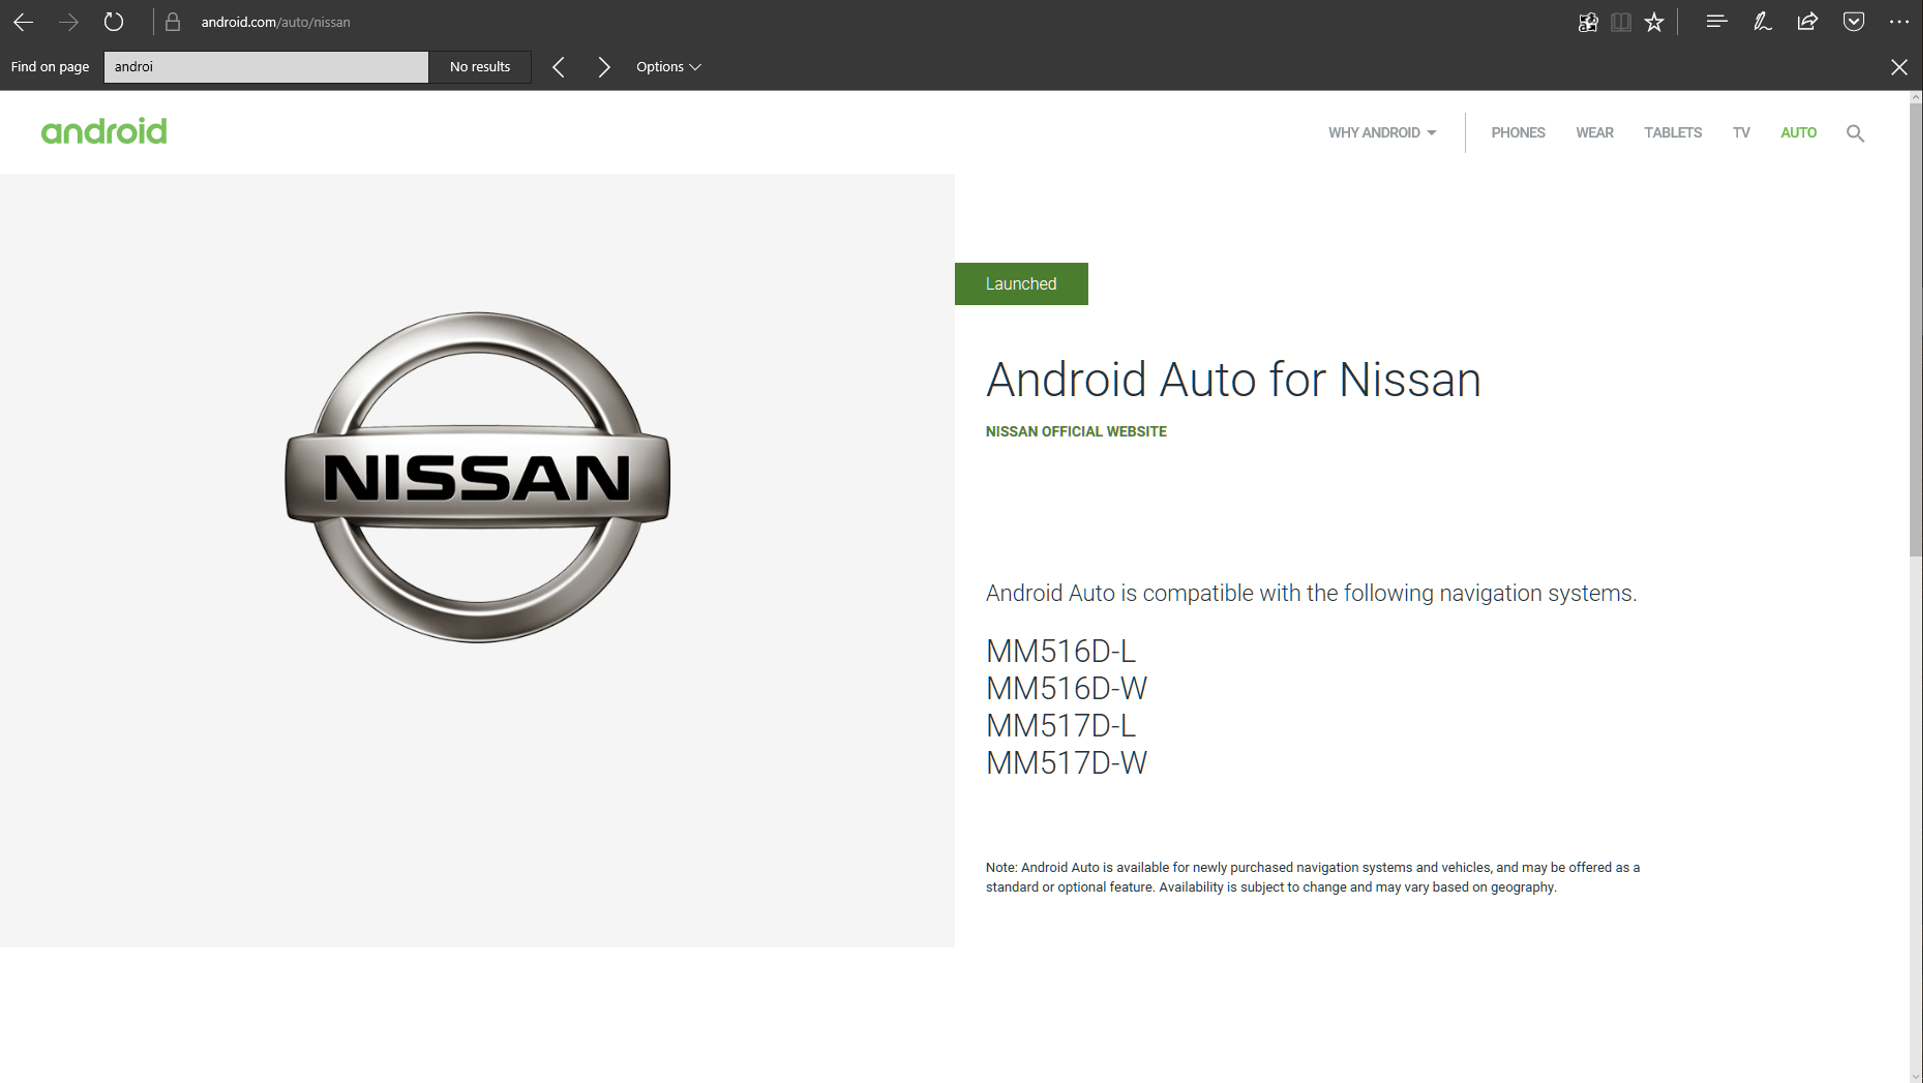 There S A List Of Nissan Navigation Systems Posted Now With Android Auto Support How Do You